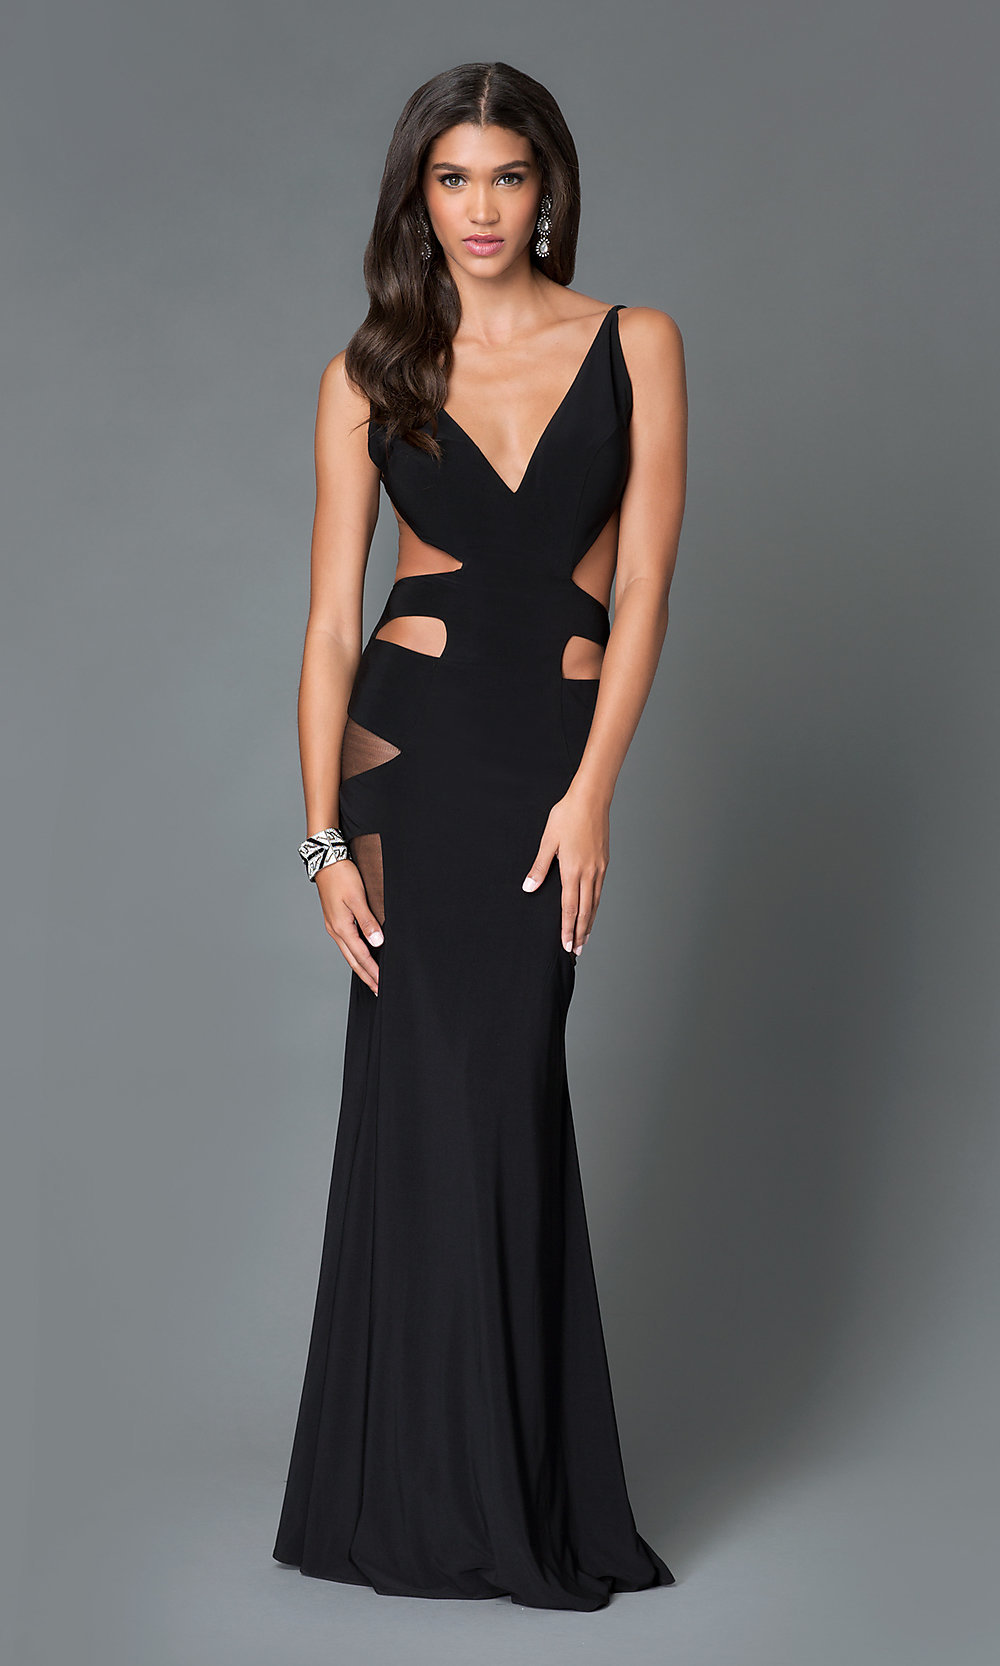 Long Black Prom Dress with Cutouts